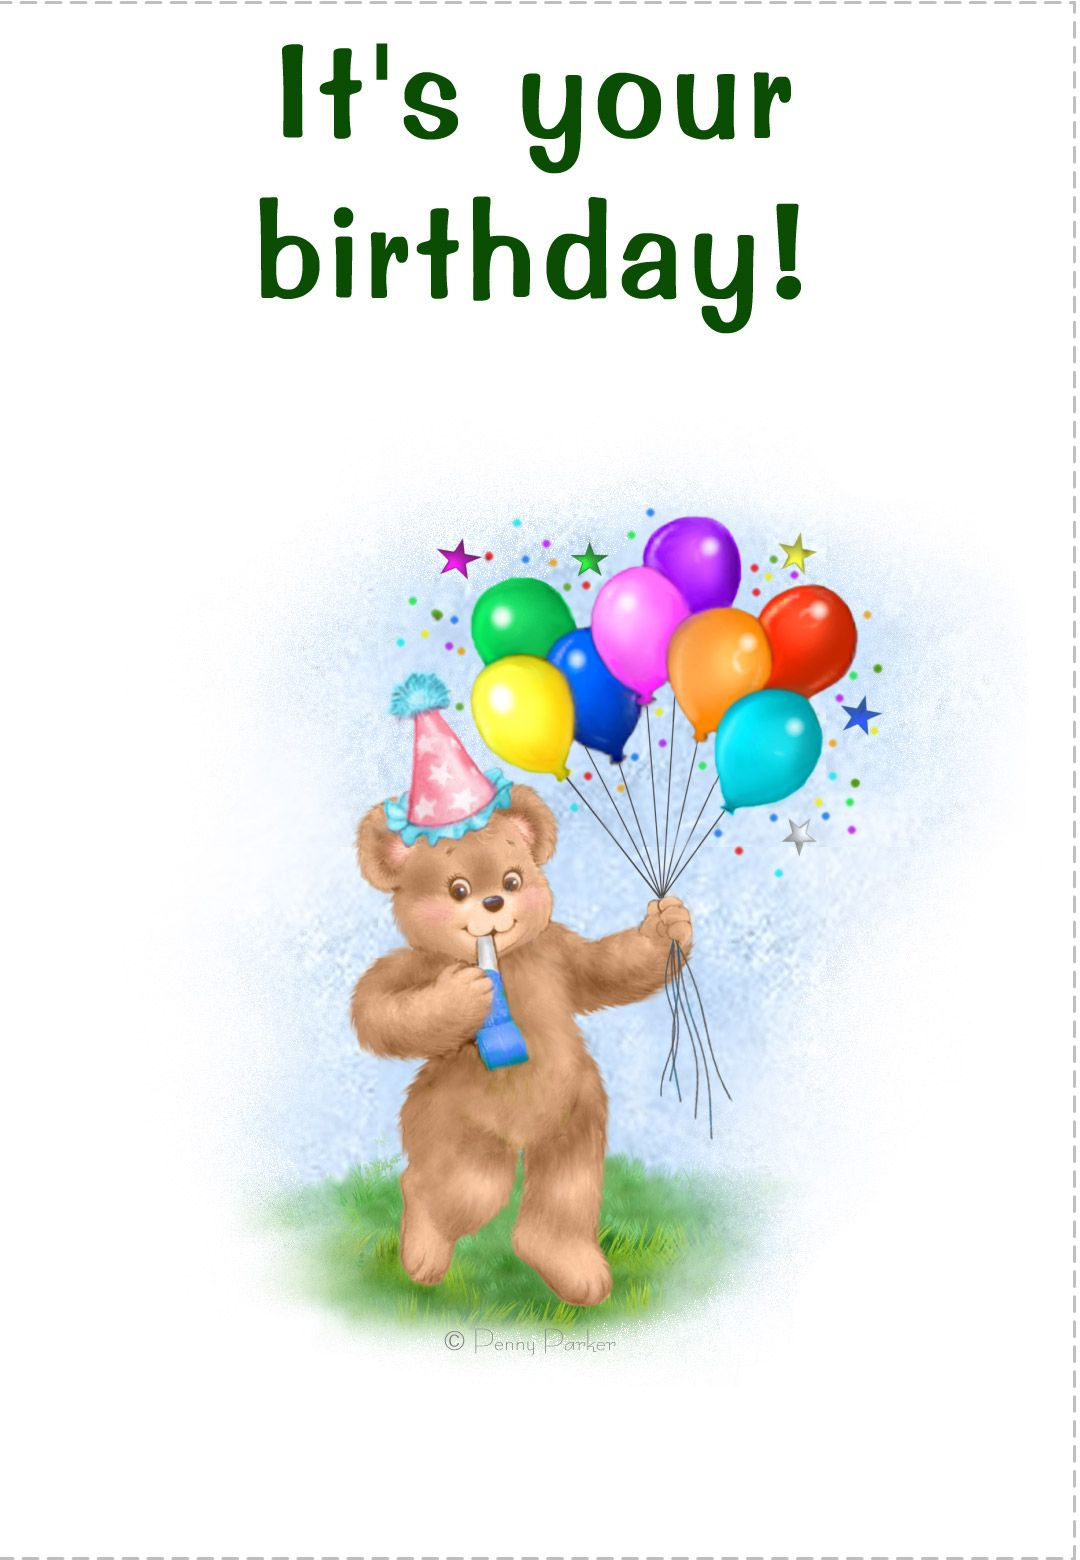 Free Printable Its Your Birthday Greeting Card Tarjetas